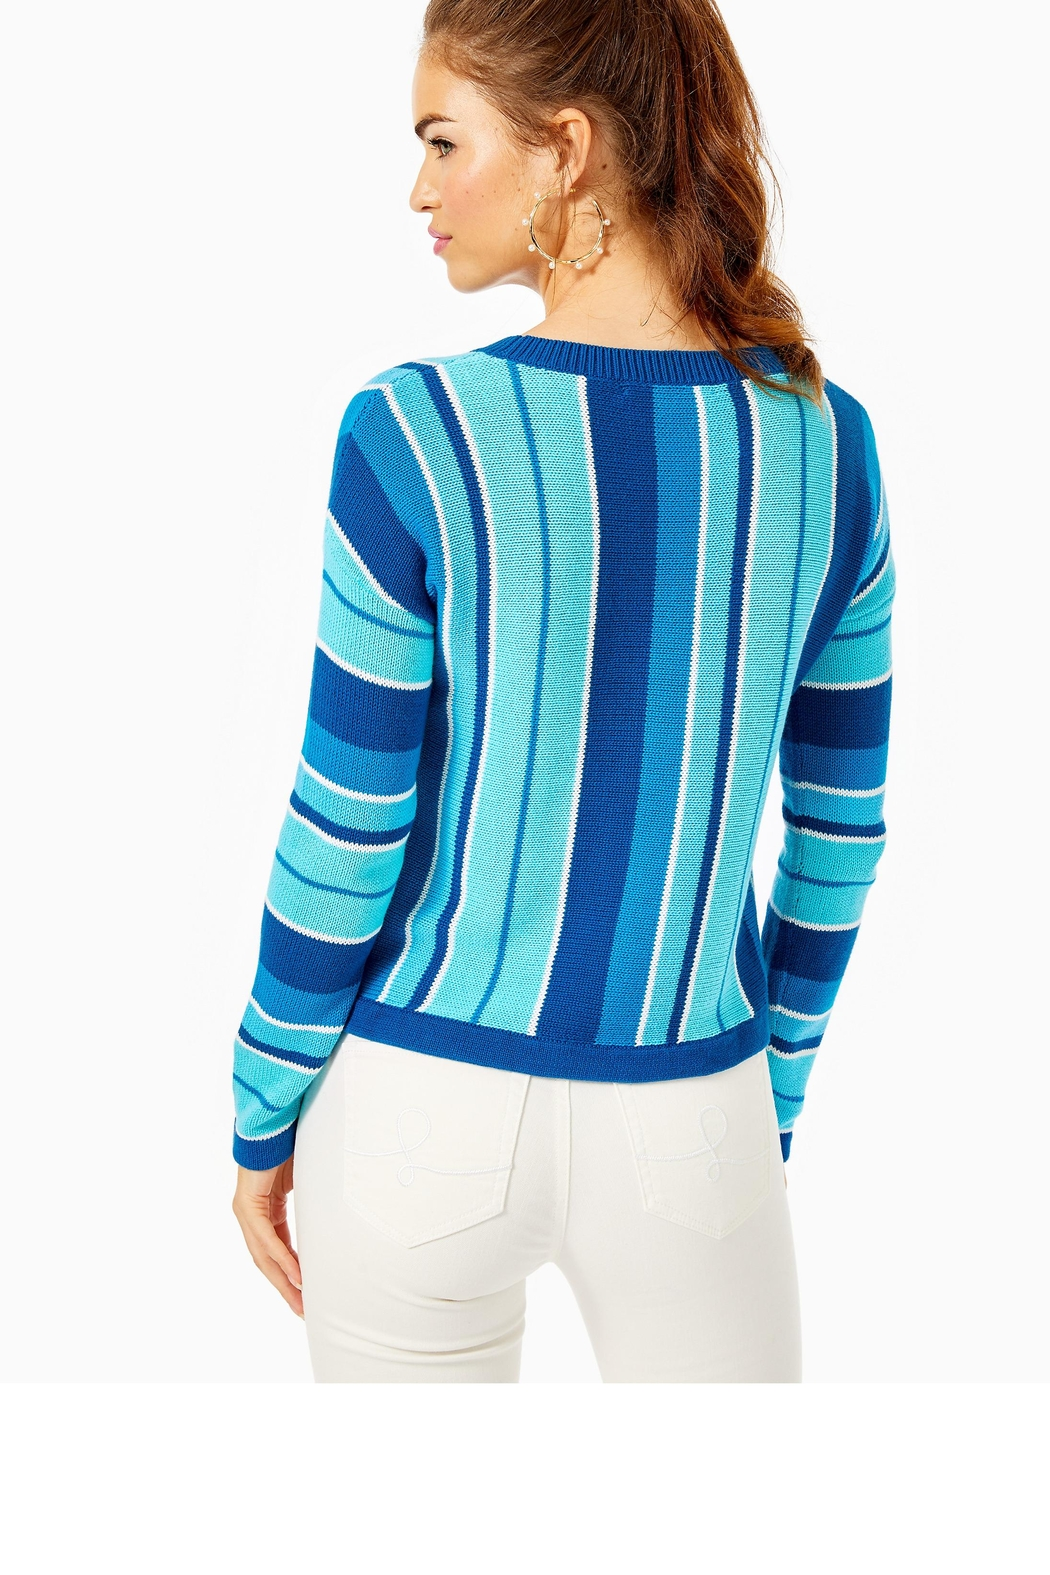 Lilly Pulitzer Daryn Sweater - Front Full Image